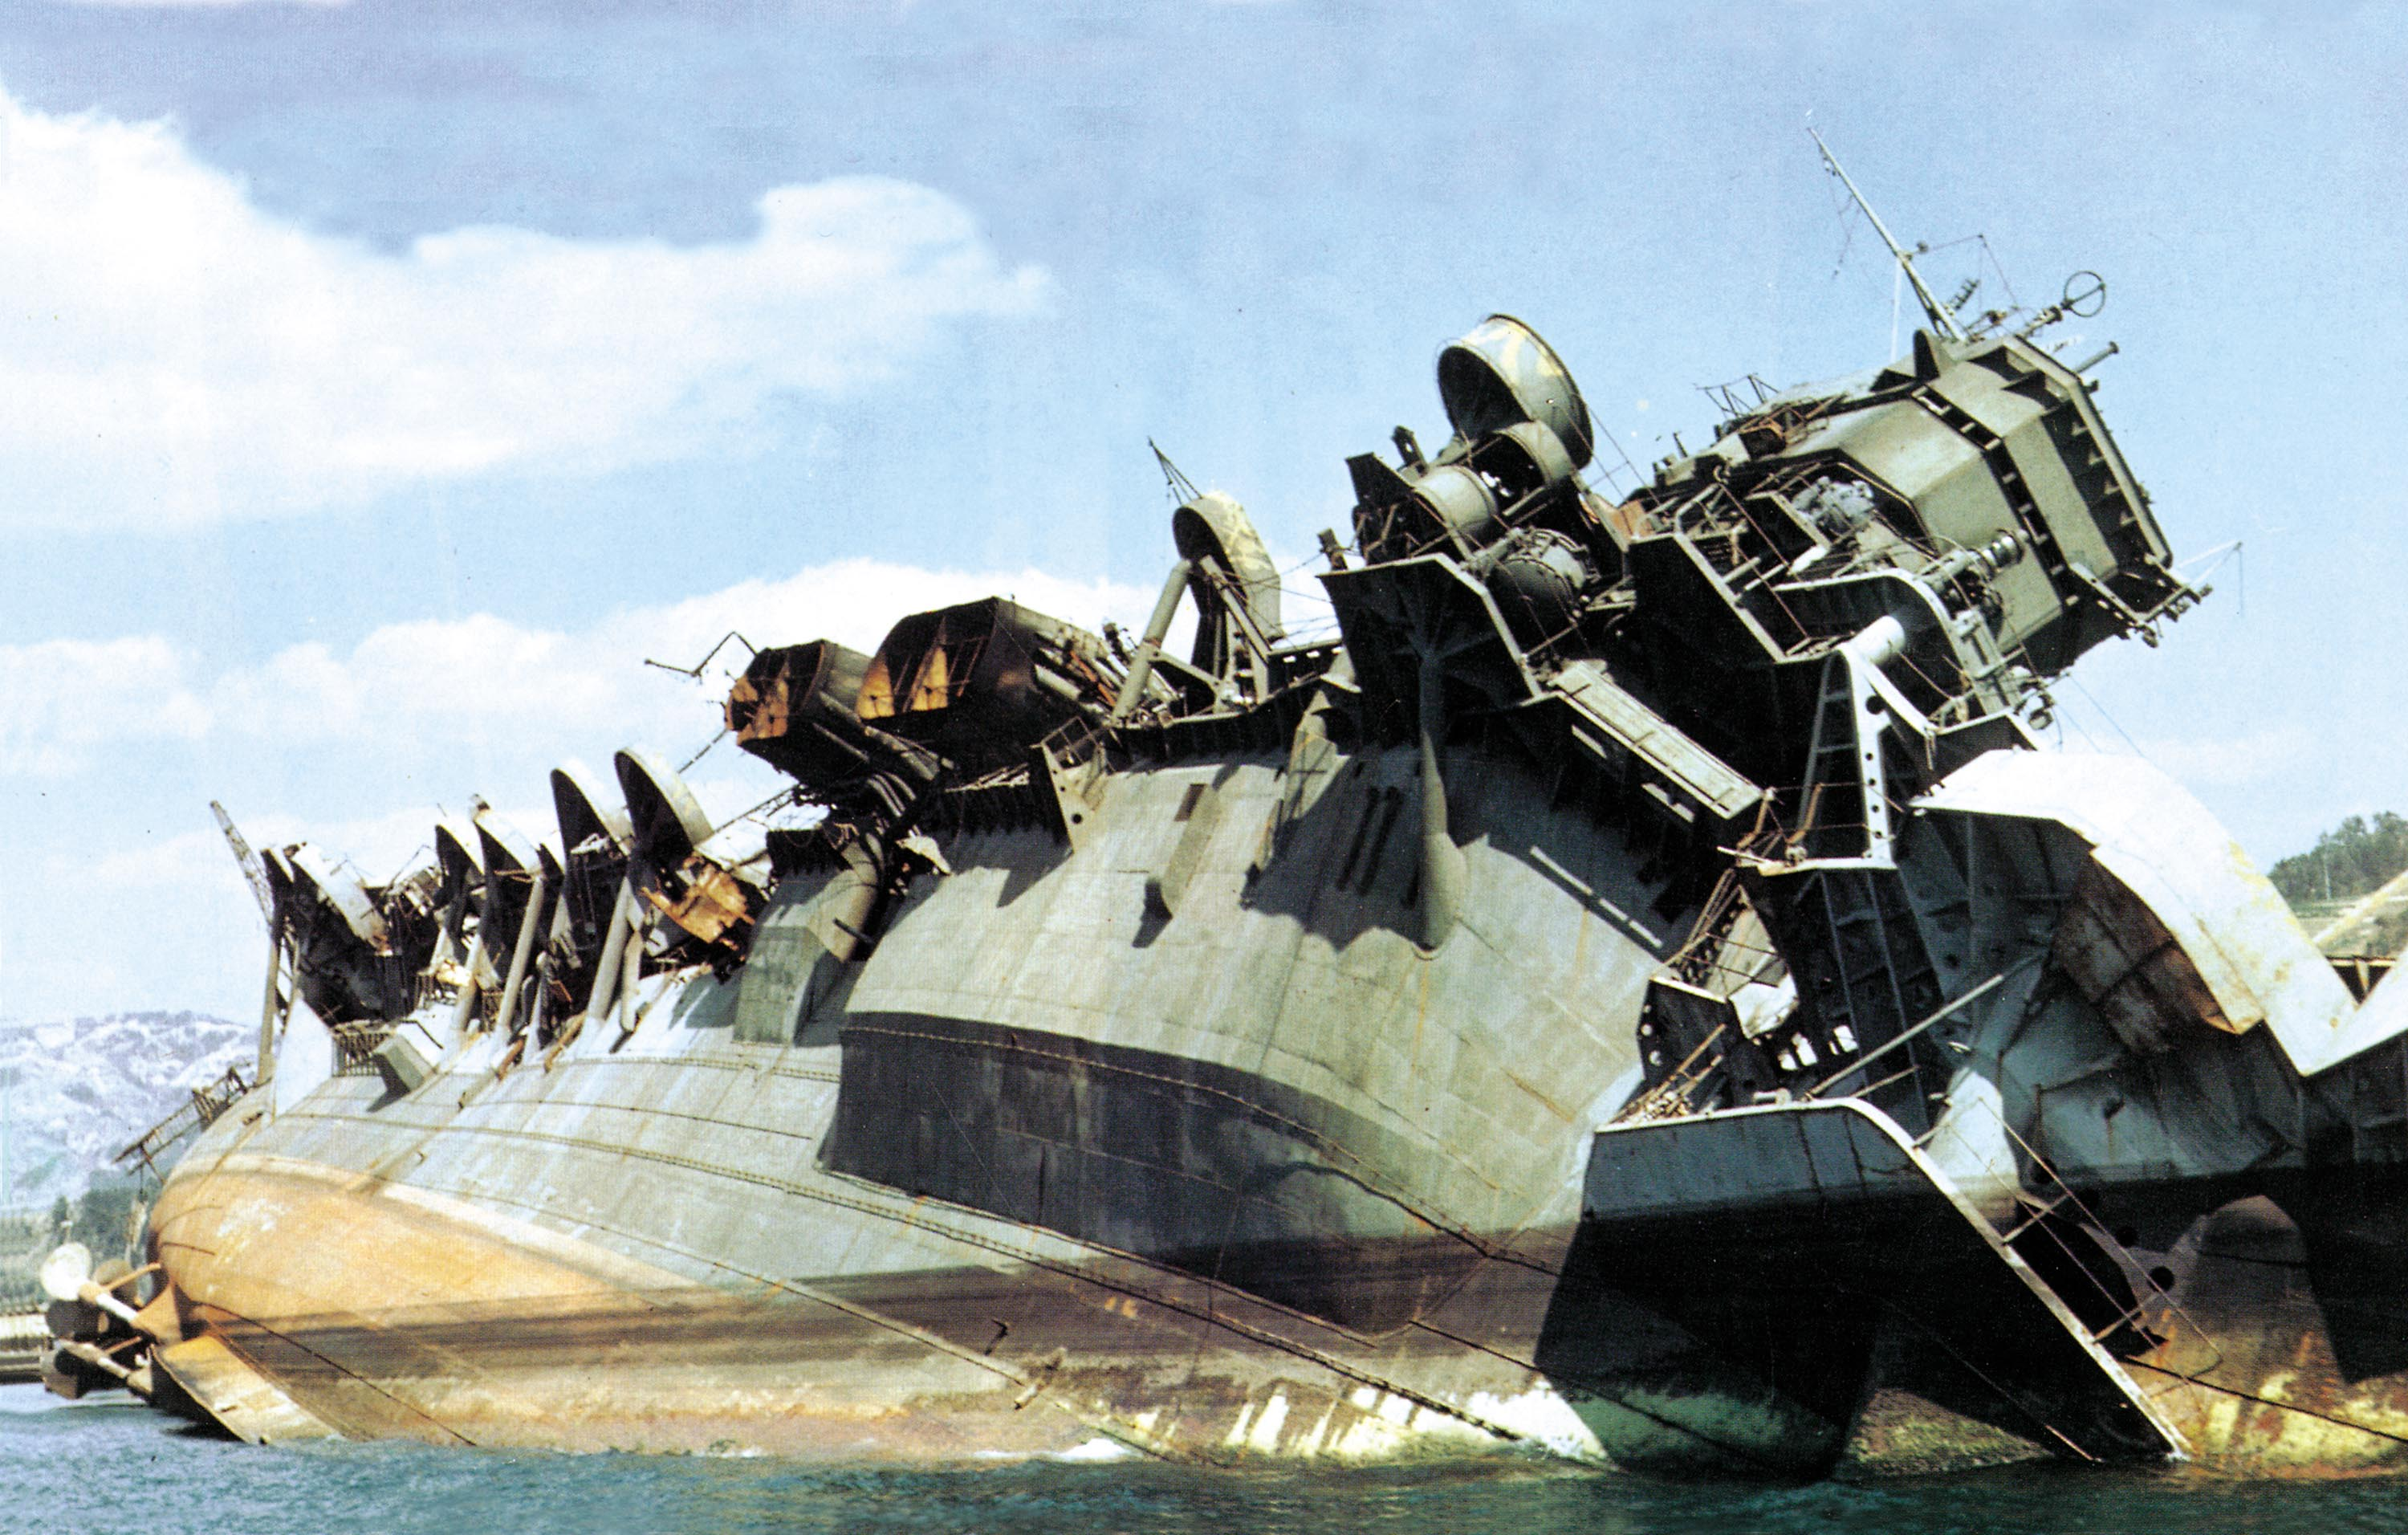 IJN_carrier_Amagi_capsized_off_Kure_in_1946.jpg